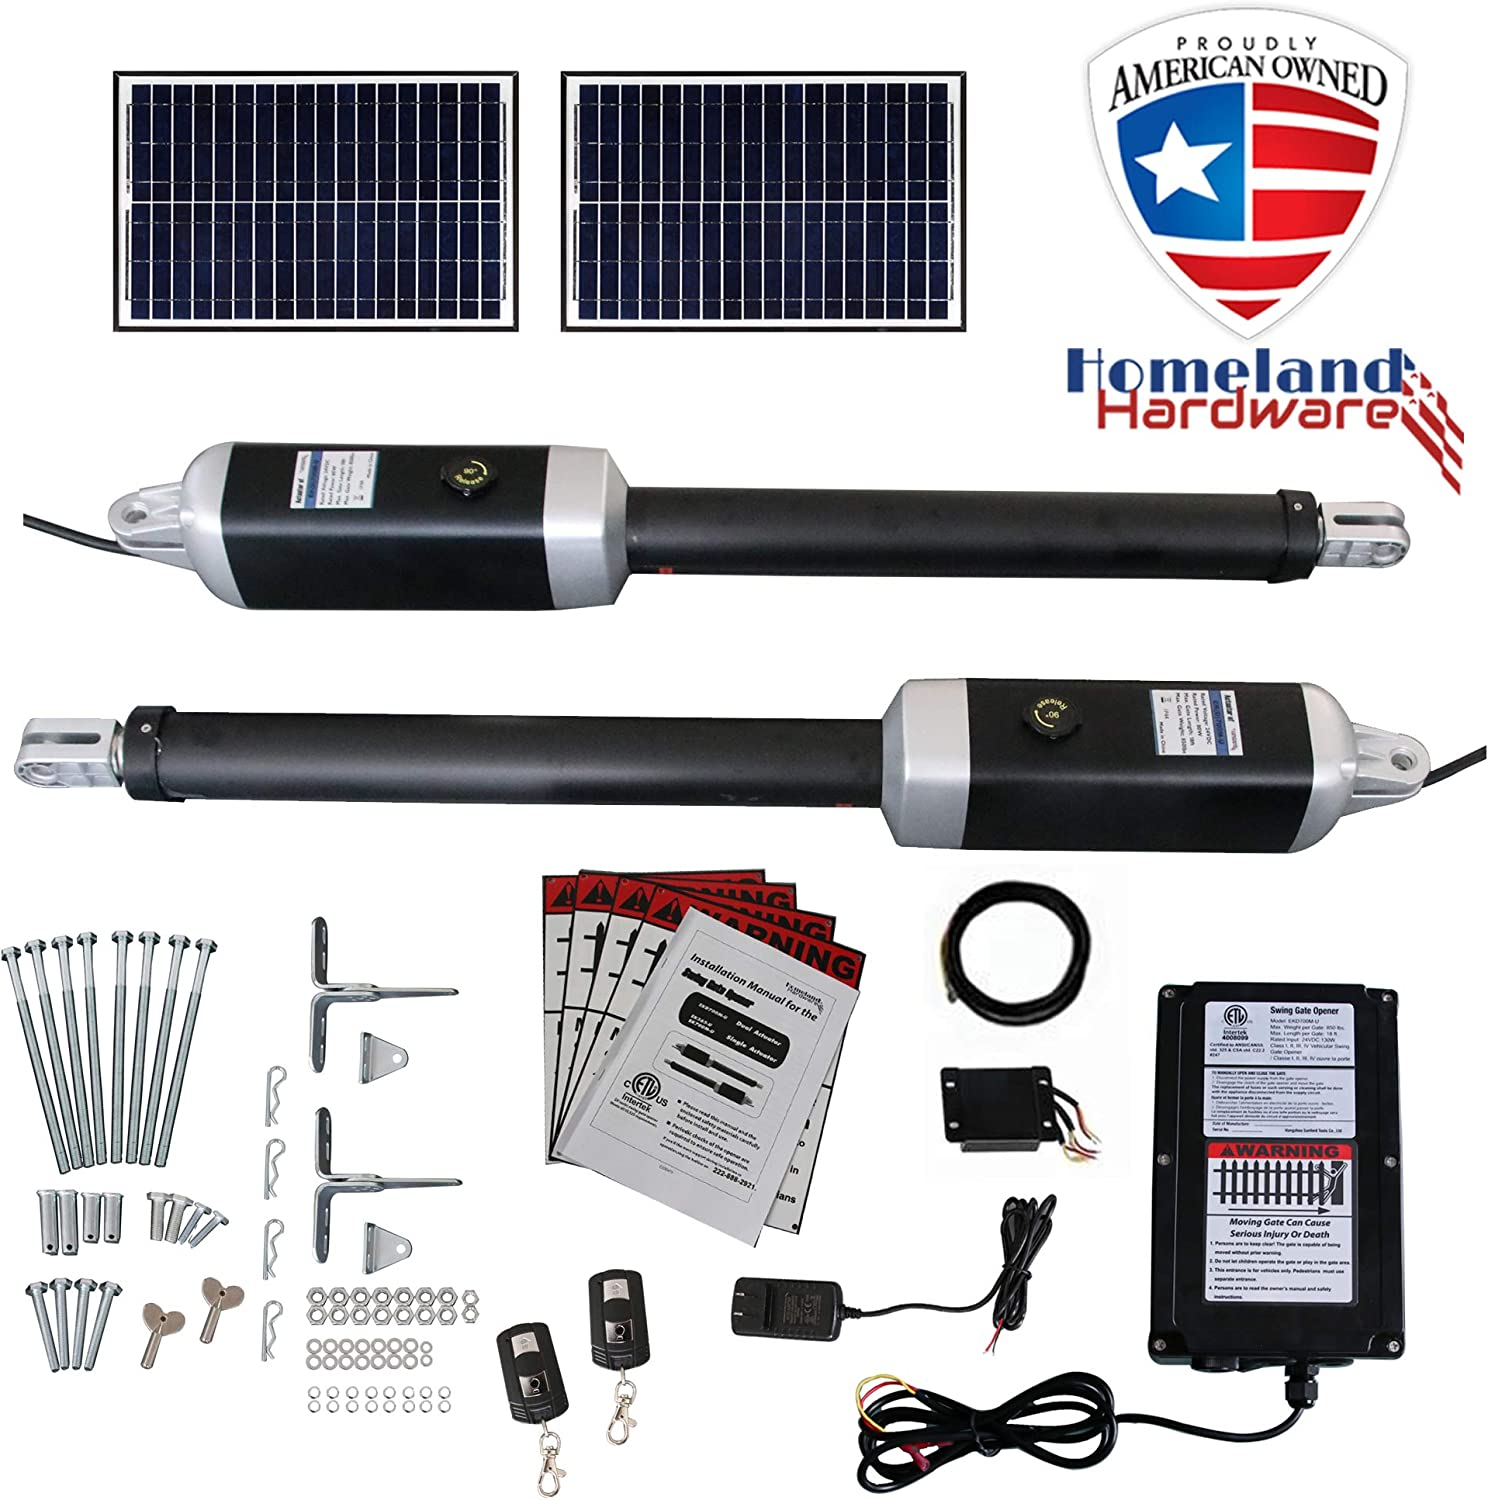 (Sale) 16 Ft. Dual Solar Powered Automatic Swing Gate Openers (US Based) 16 Feet or 1200+ Lbs. Combined gate Capacity ETL Listed IP56 Waterproof Dual (2 Remotes, 2-10W panels) by Homeland Hardware